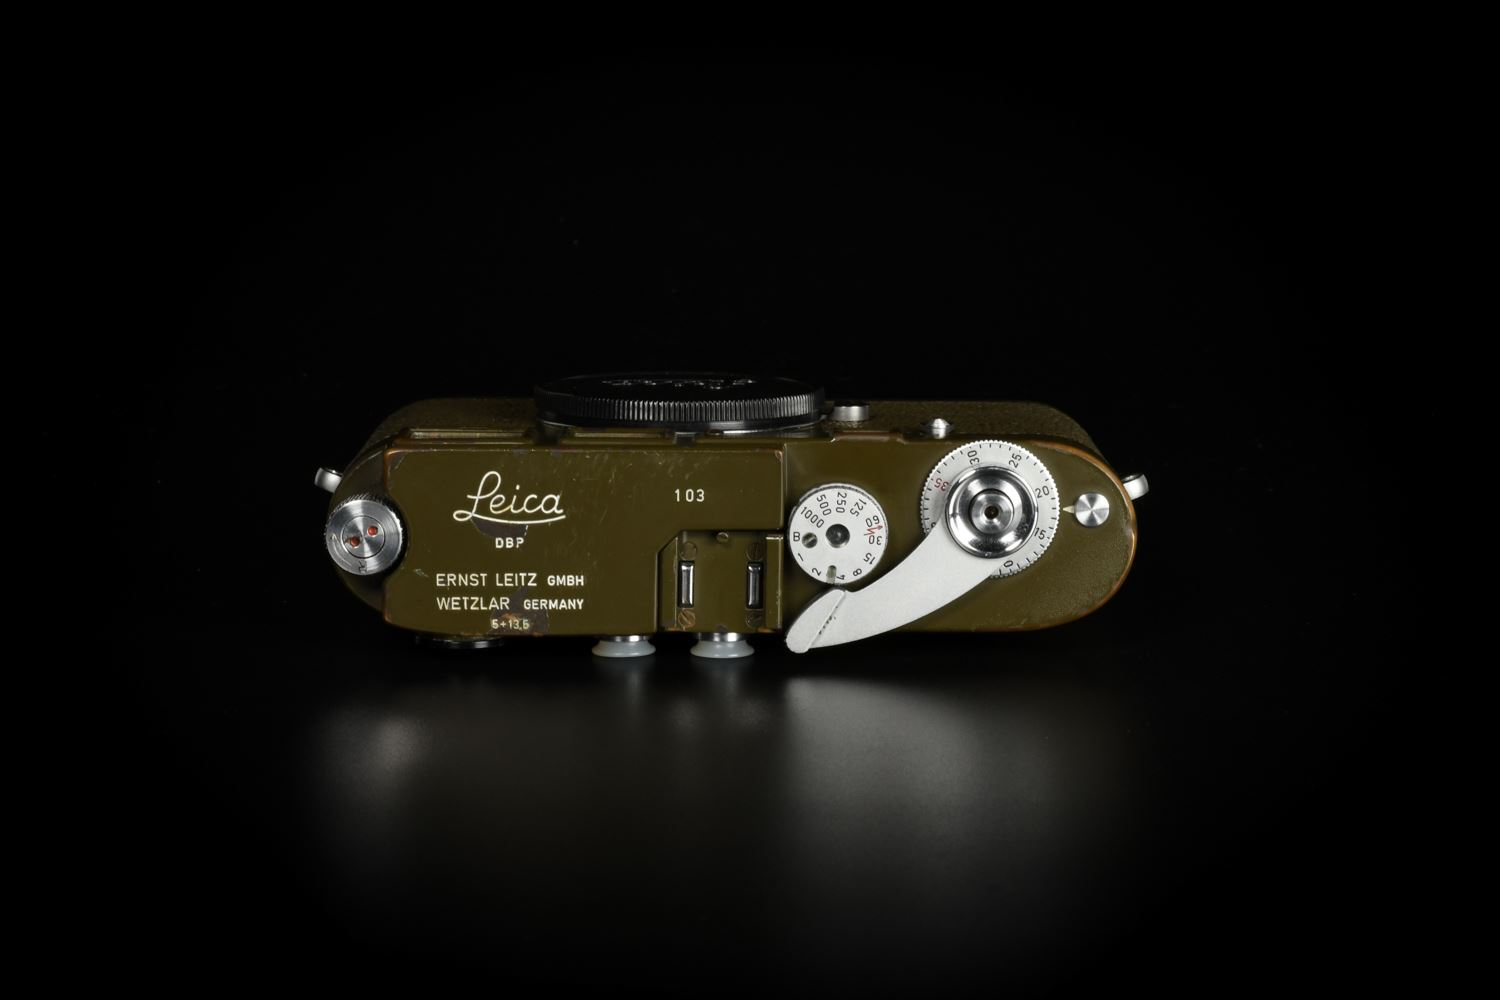 Picture of Leica M1 Olive MP Top with Elmar-M 135mm f/4 Bundeseigentum